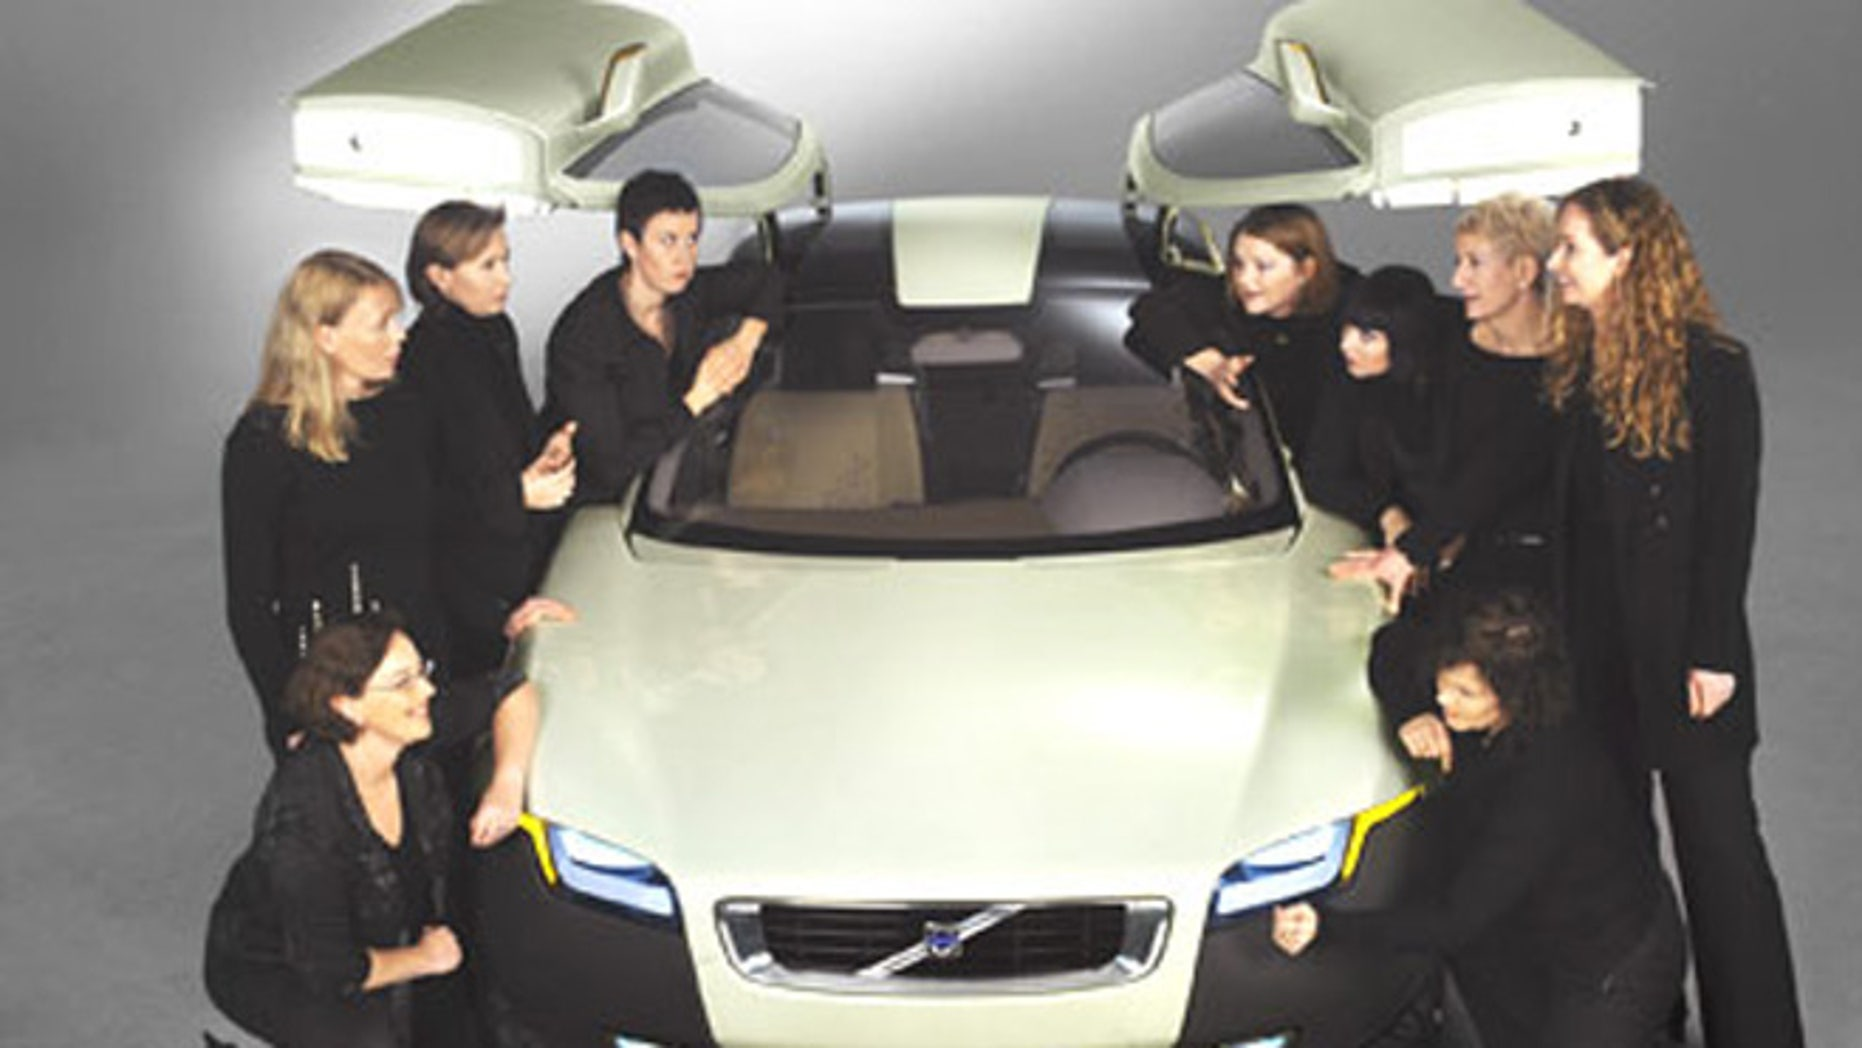 The Volvo YCC (Your Car Concept) was designed by women, for women.